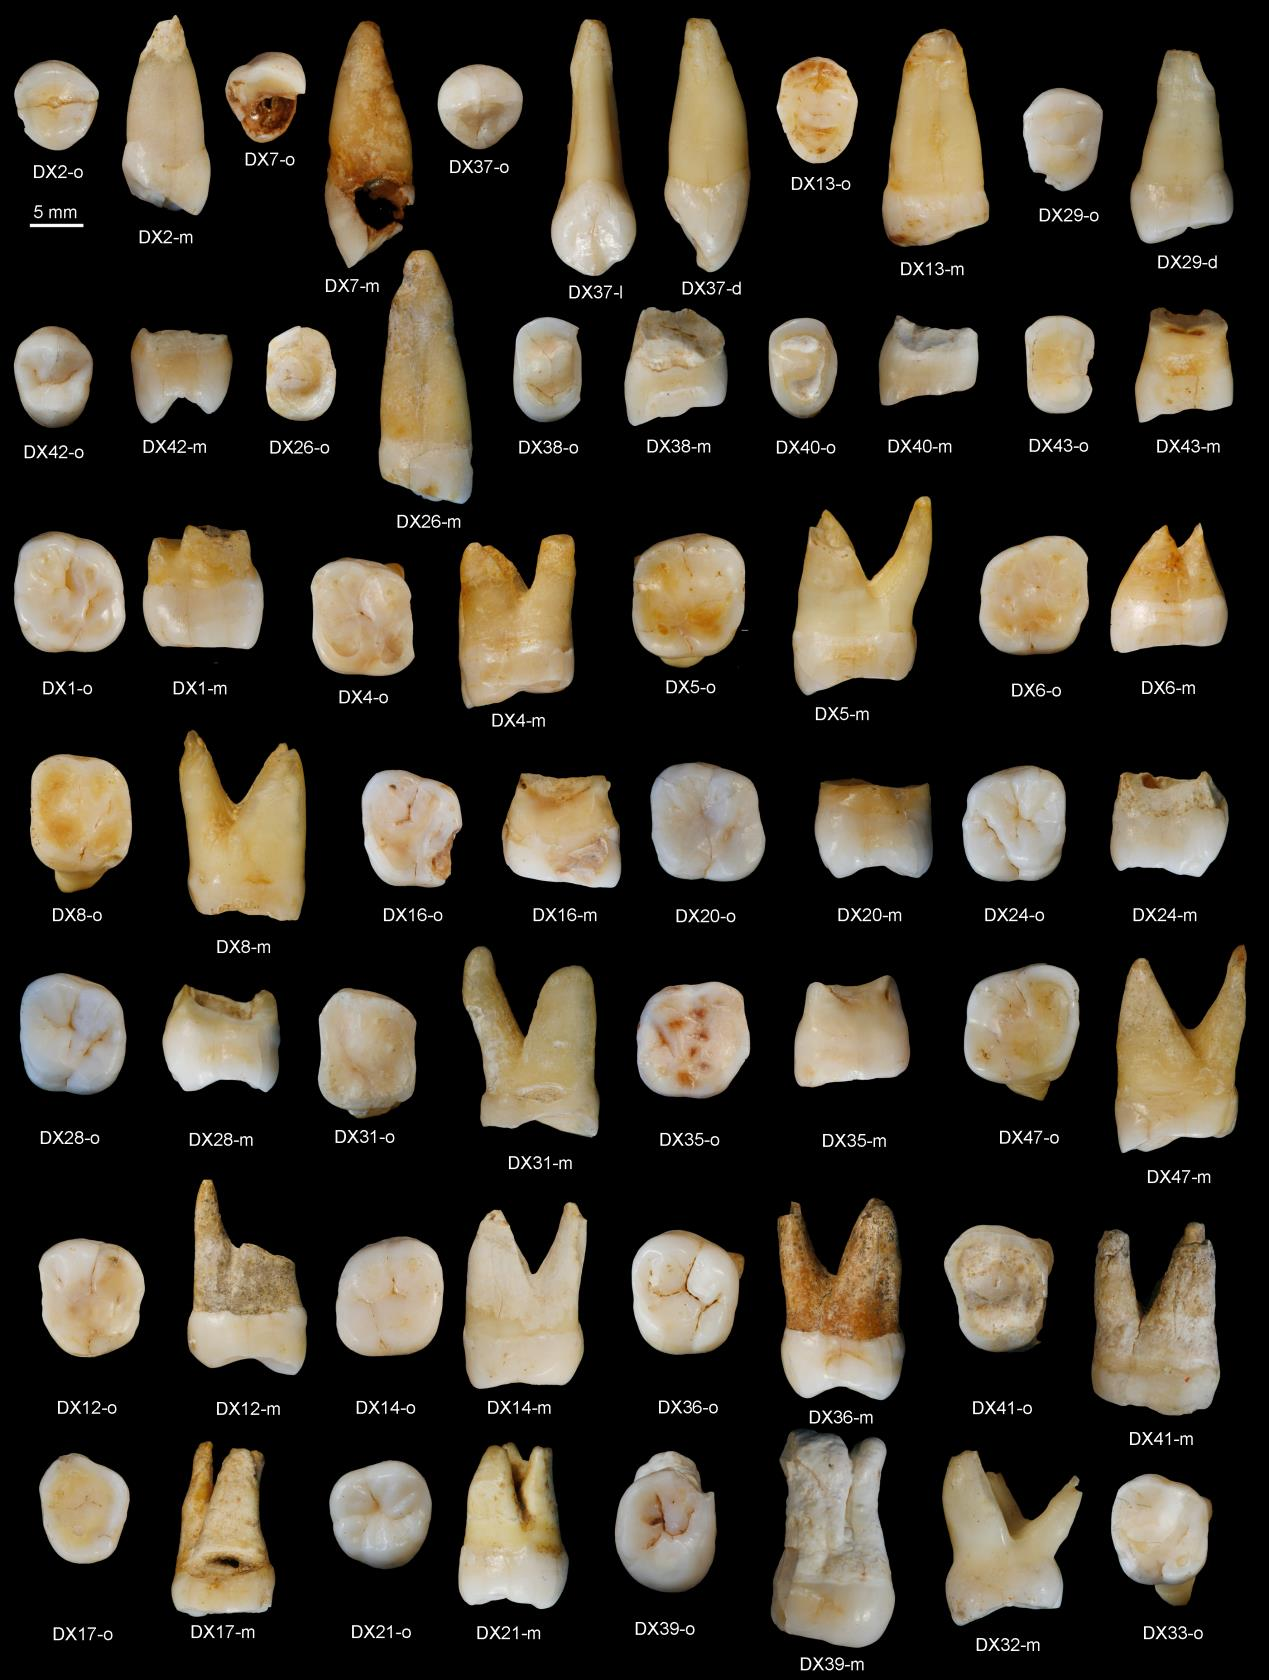 mystical properties of teeth